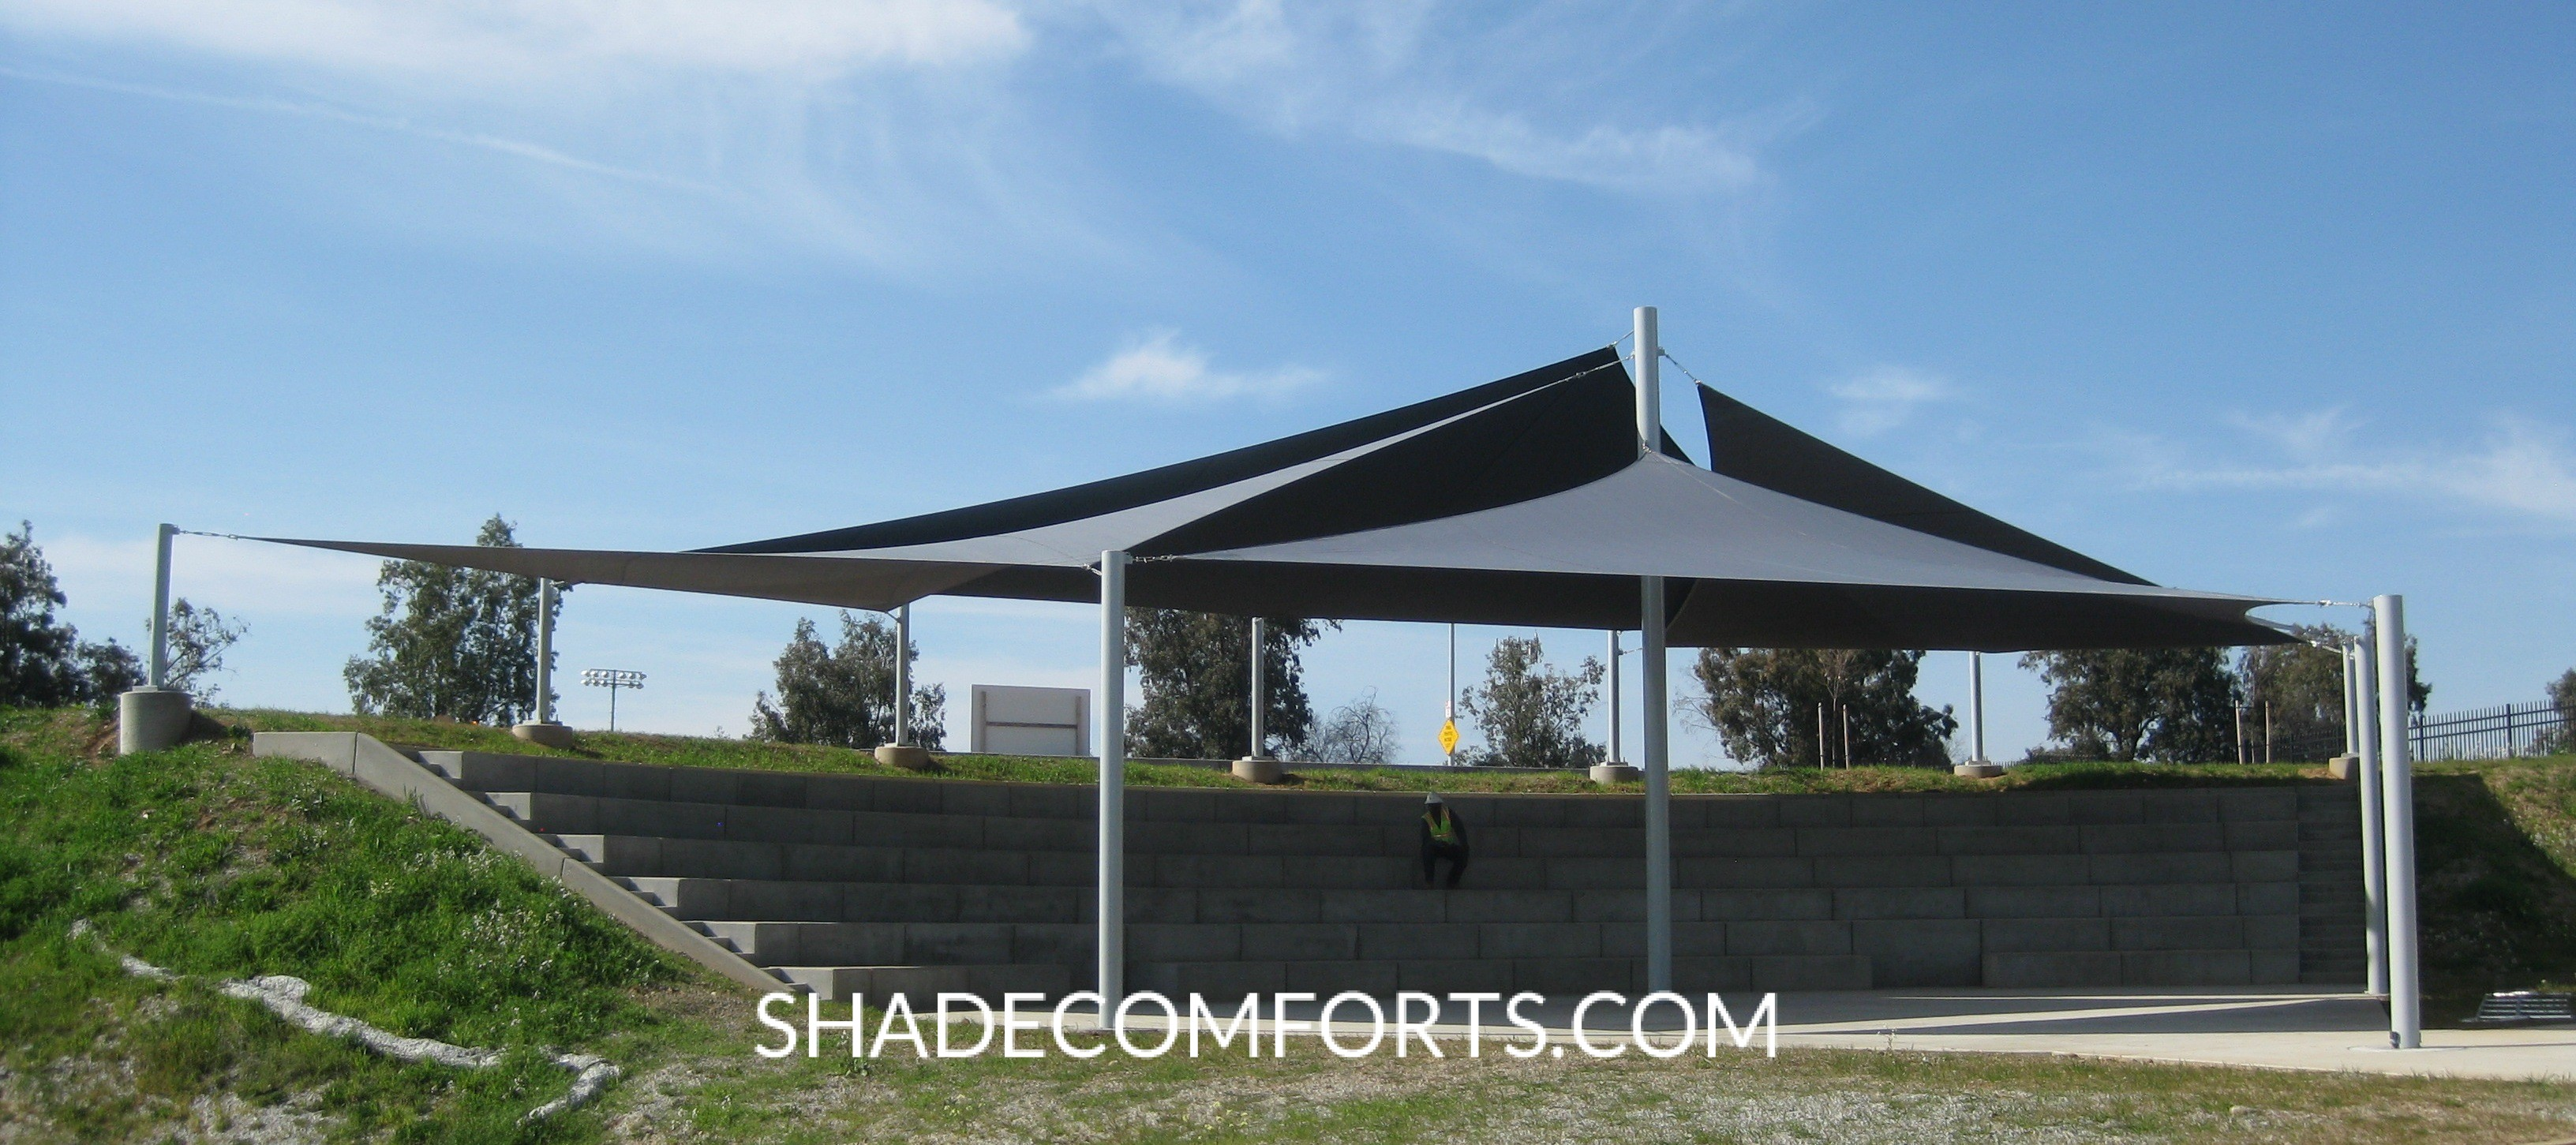 ideas sails patio tags covers shades of metal sail sun carports beautiful lovely backyard about shade